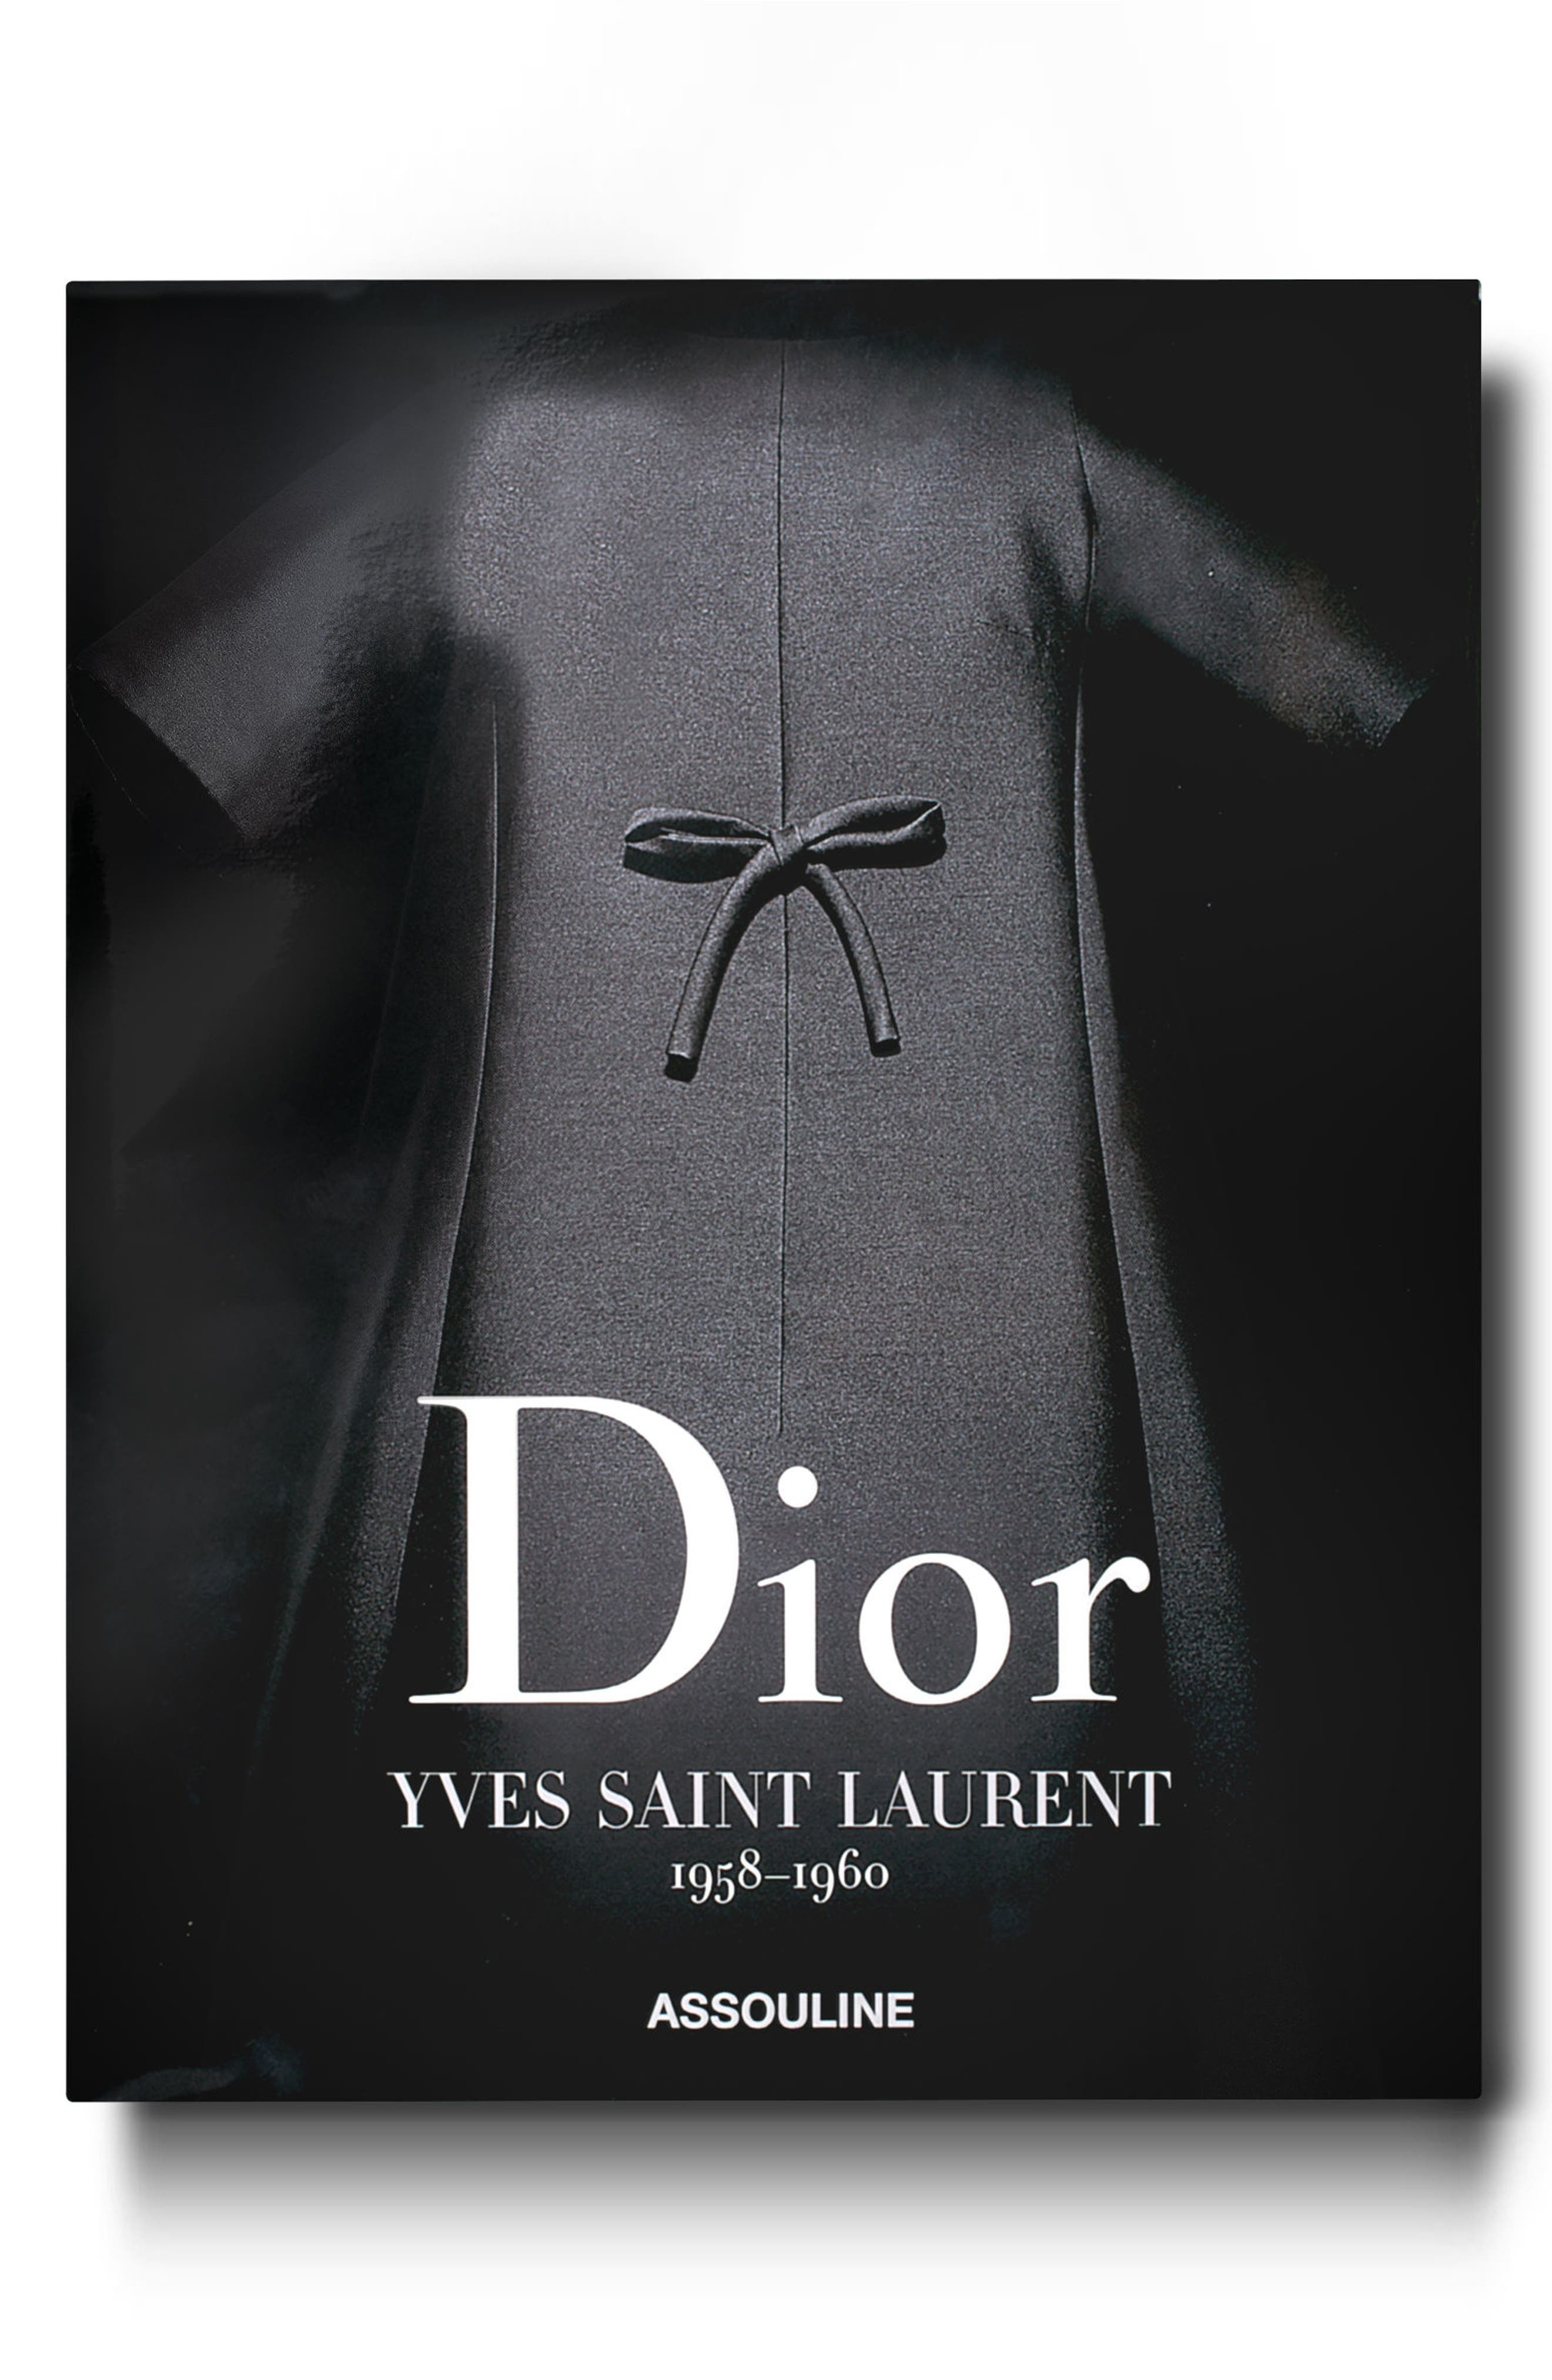 Alternate Image 1 Selected - 'Dior by Yves Saint Laurent' Book